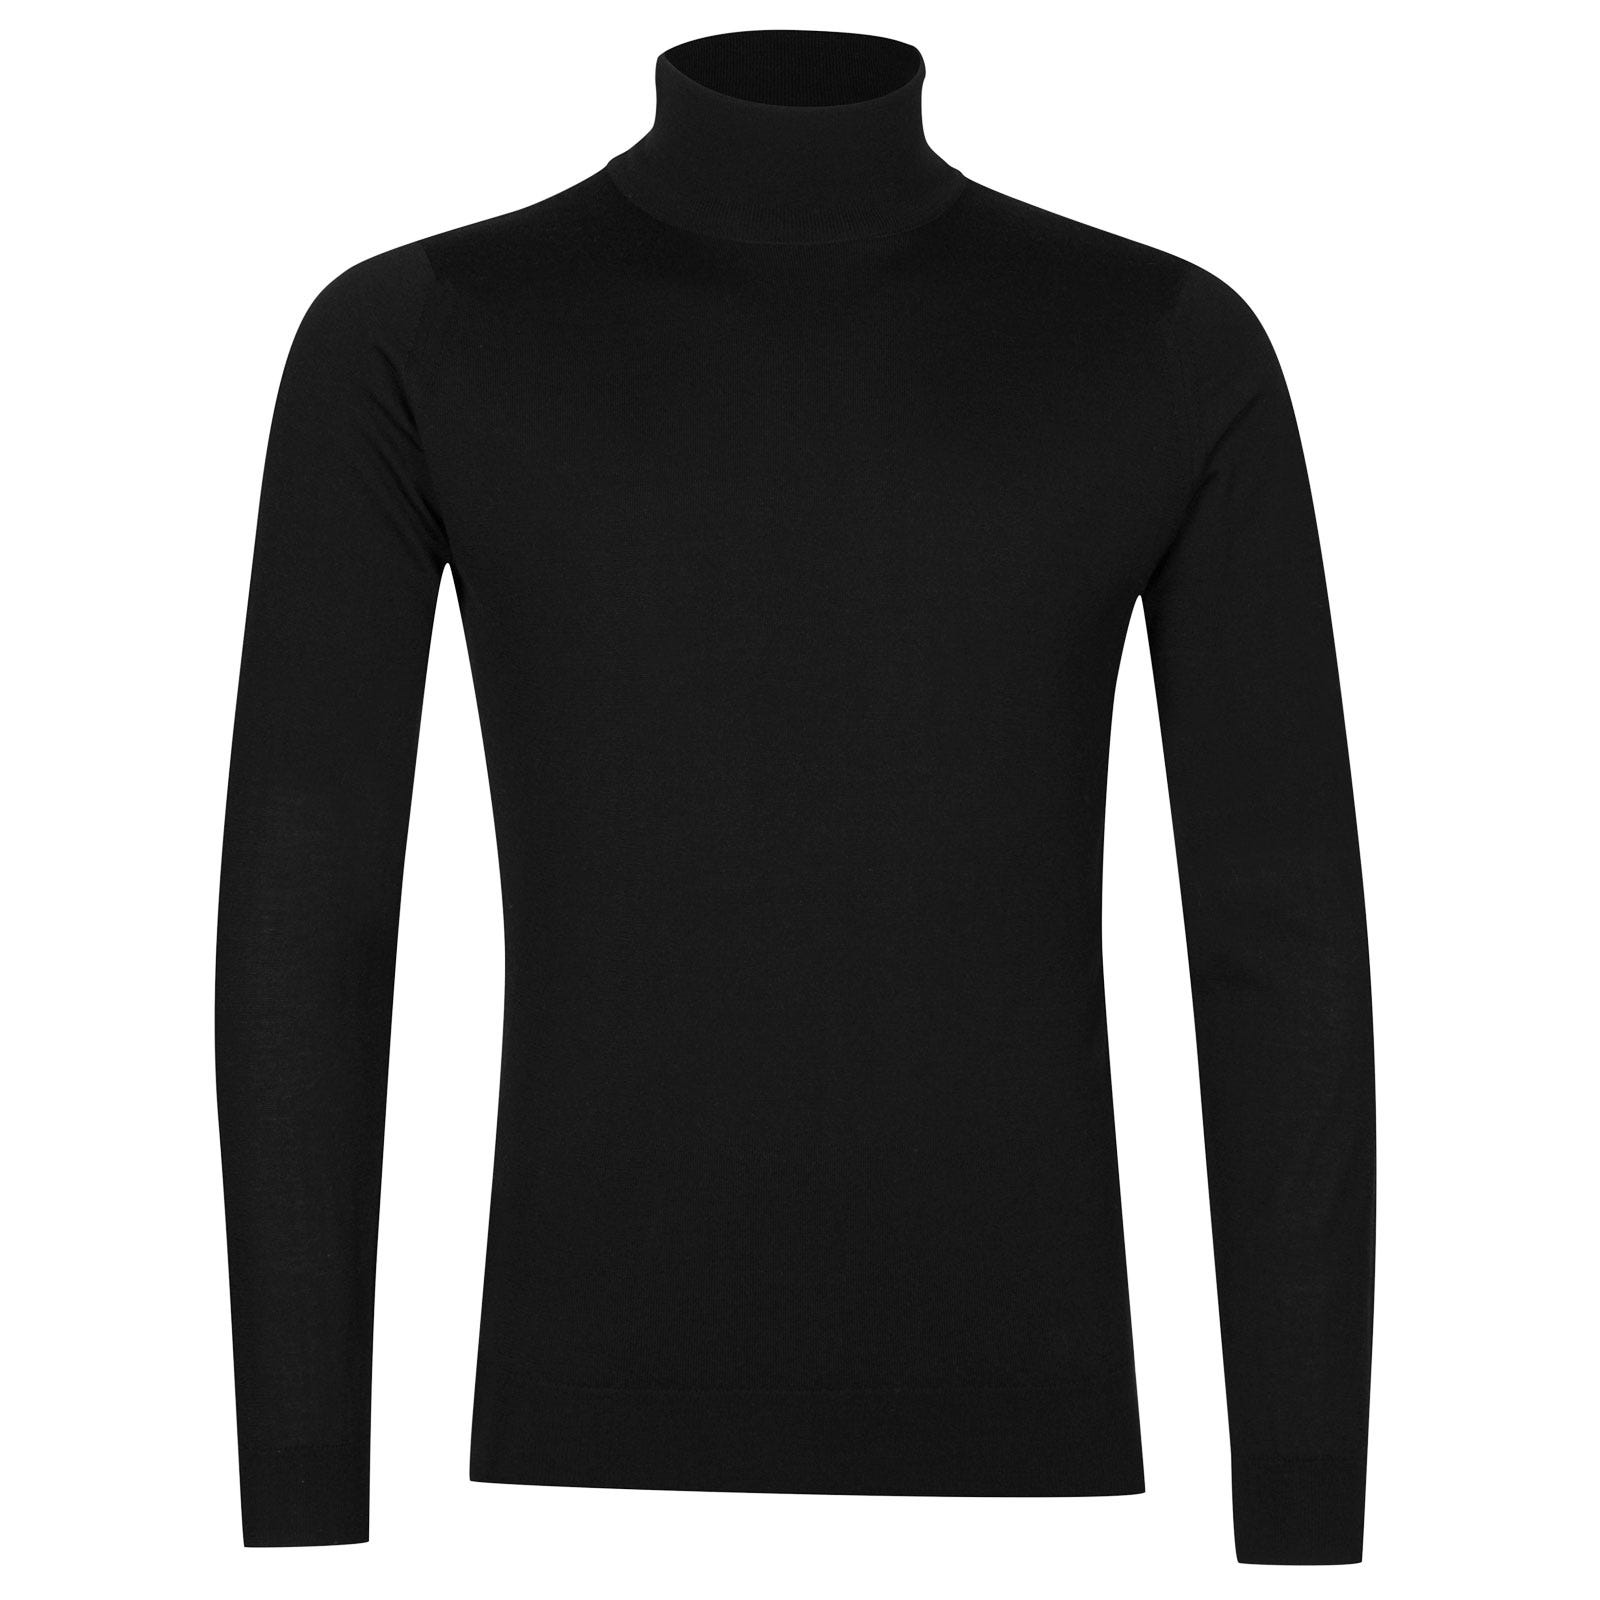 John Smedley Arlington Merino Wool and Cashmere Pullover in Black-M